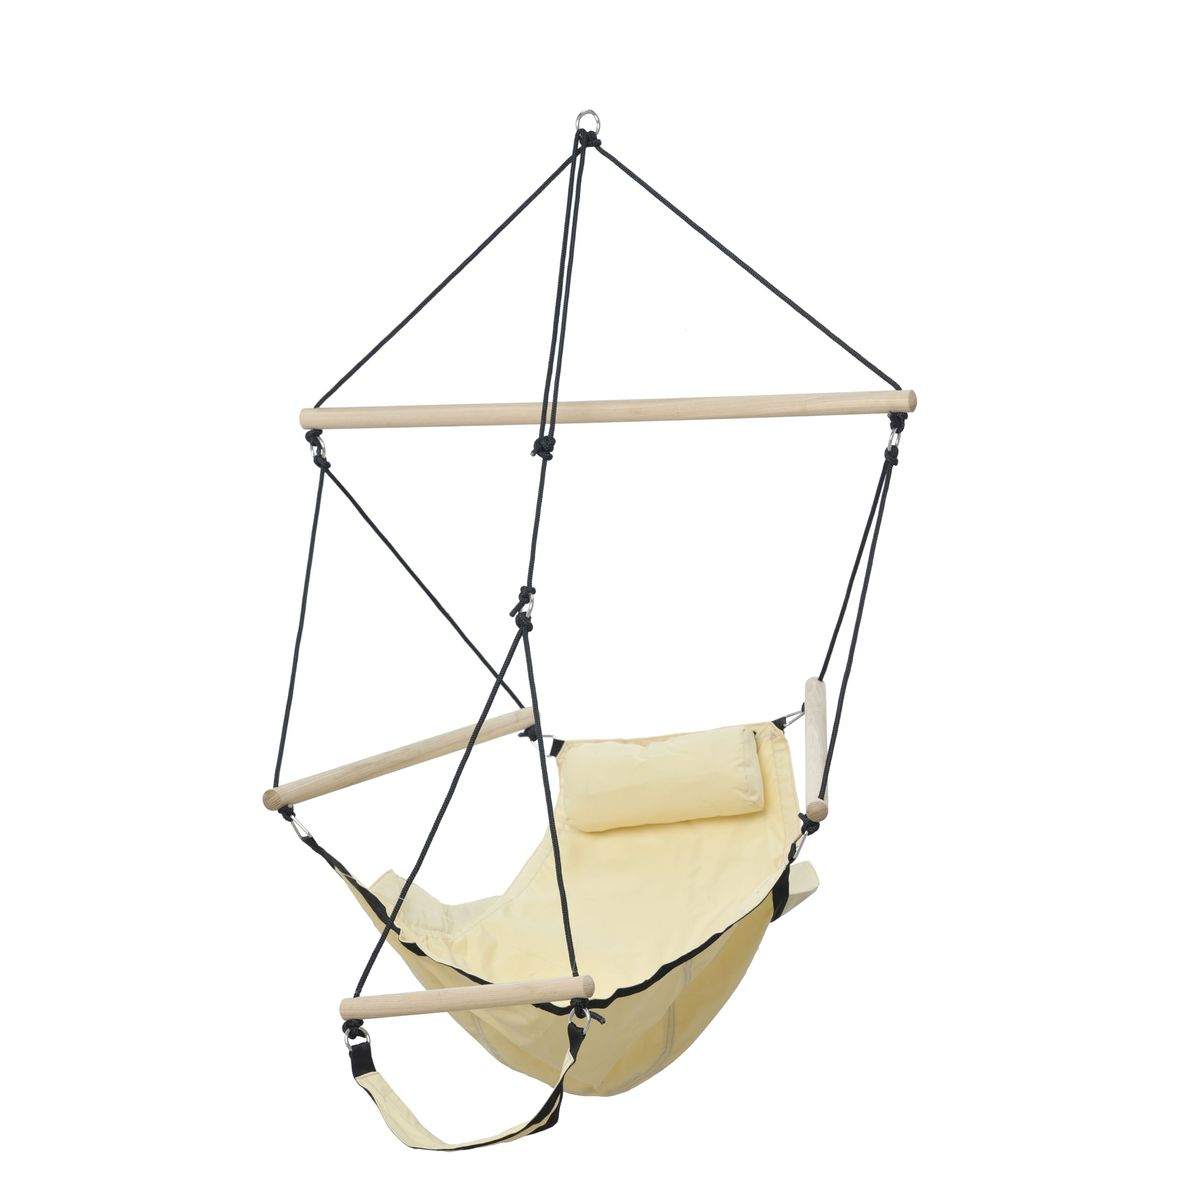 Amazonas Swinger Sand Hanging Chair - Ruby's Garden Boutique